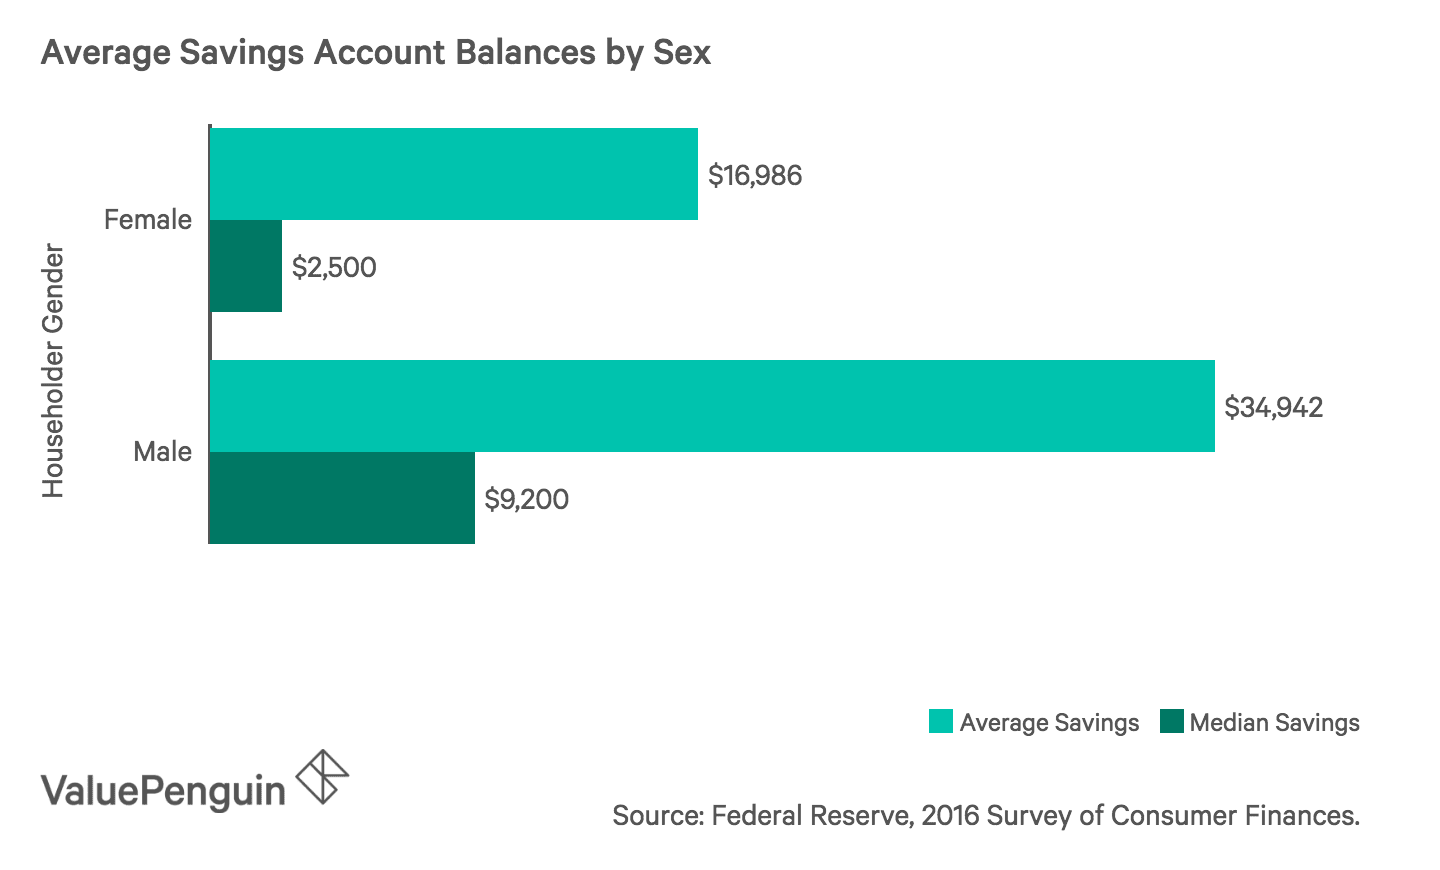 Bar chart showing average and median savings account balances for male and female householders